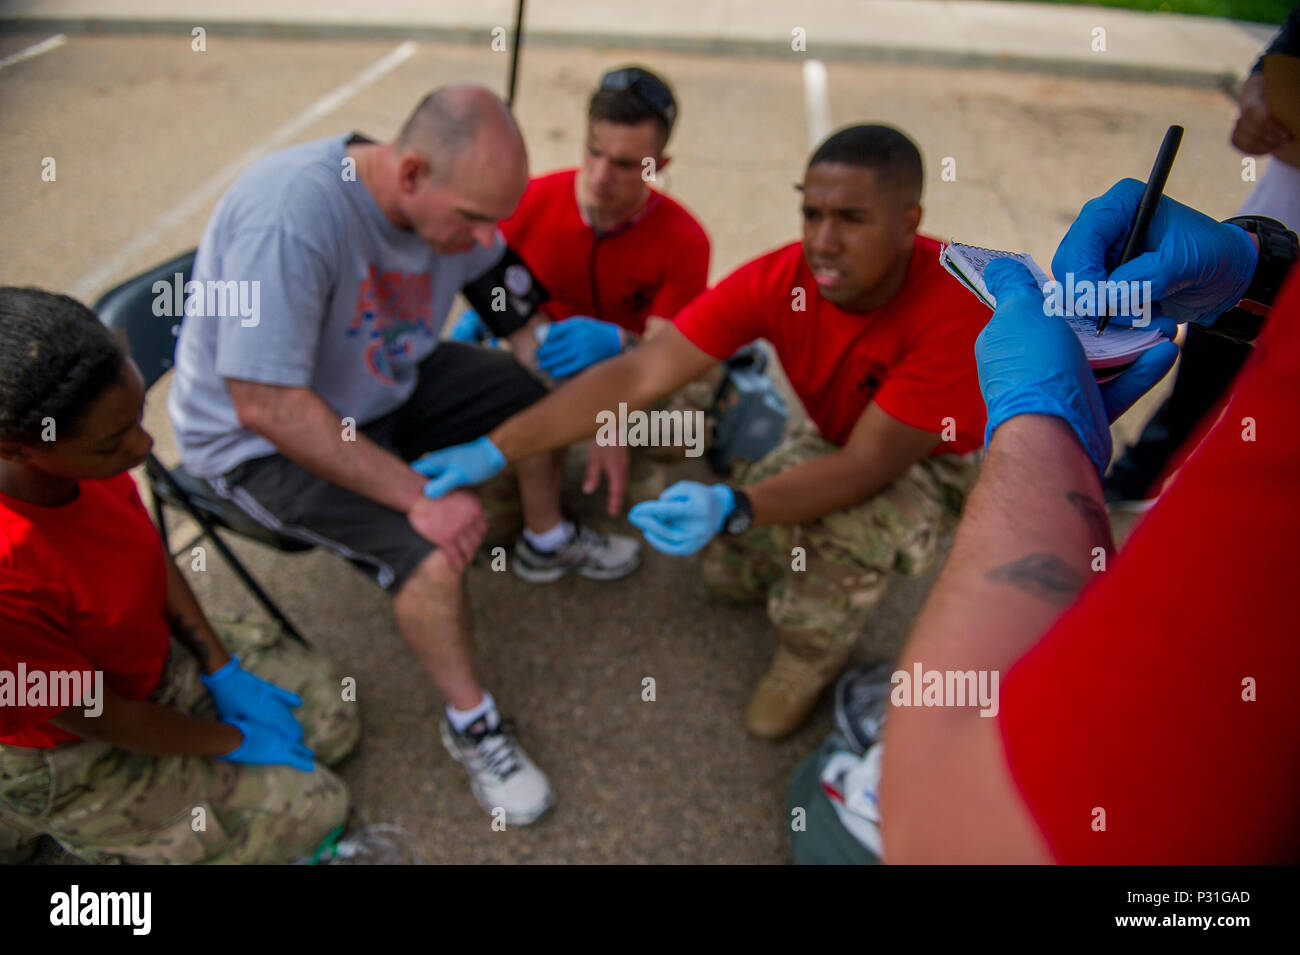 Correlated Stock Photos Images Alamy Rodeo Bundling 5 Abu L Us Air Force Emergency Medical Technicians From Cannon Base Nm Evaluate And